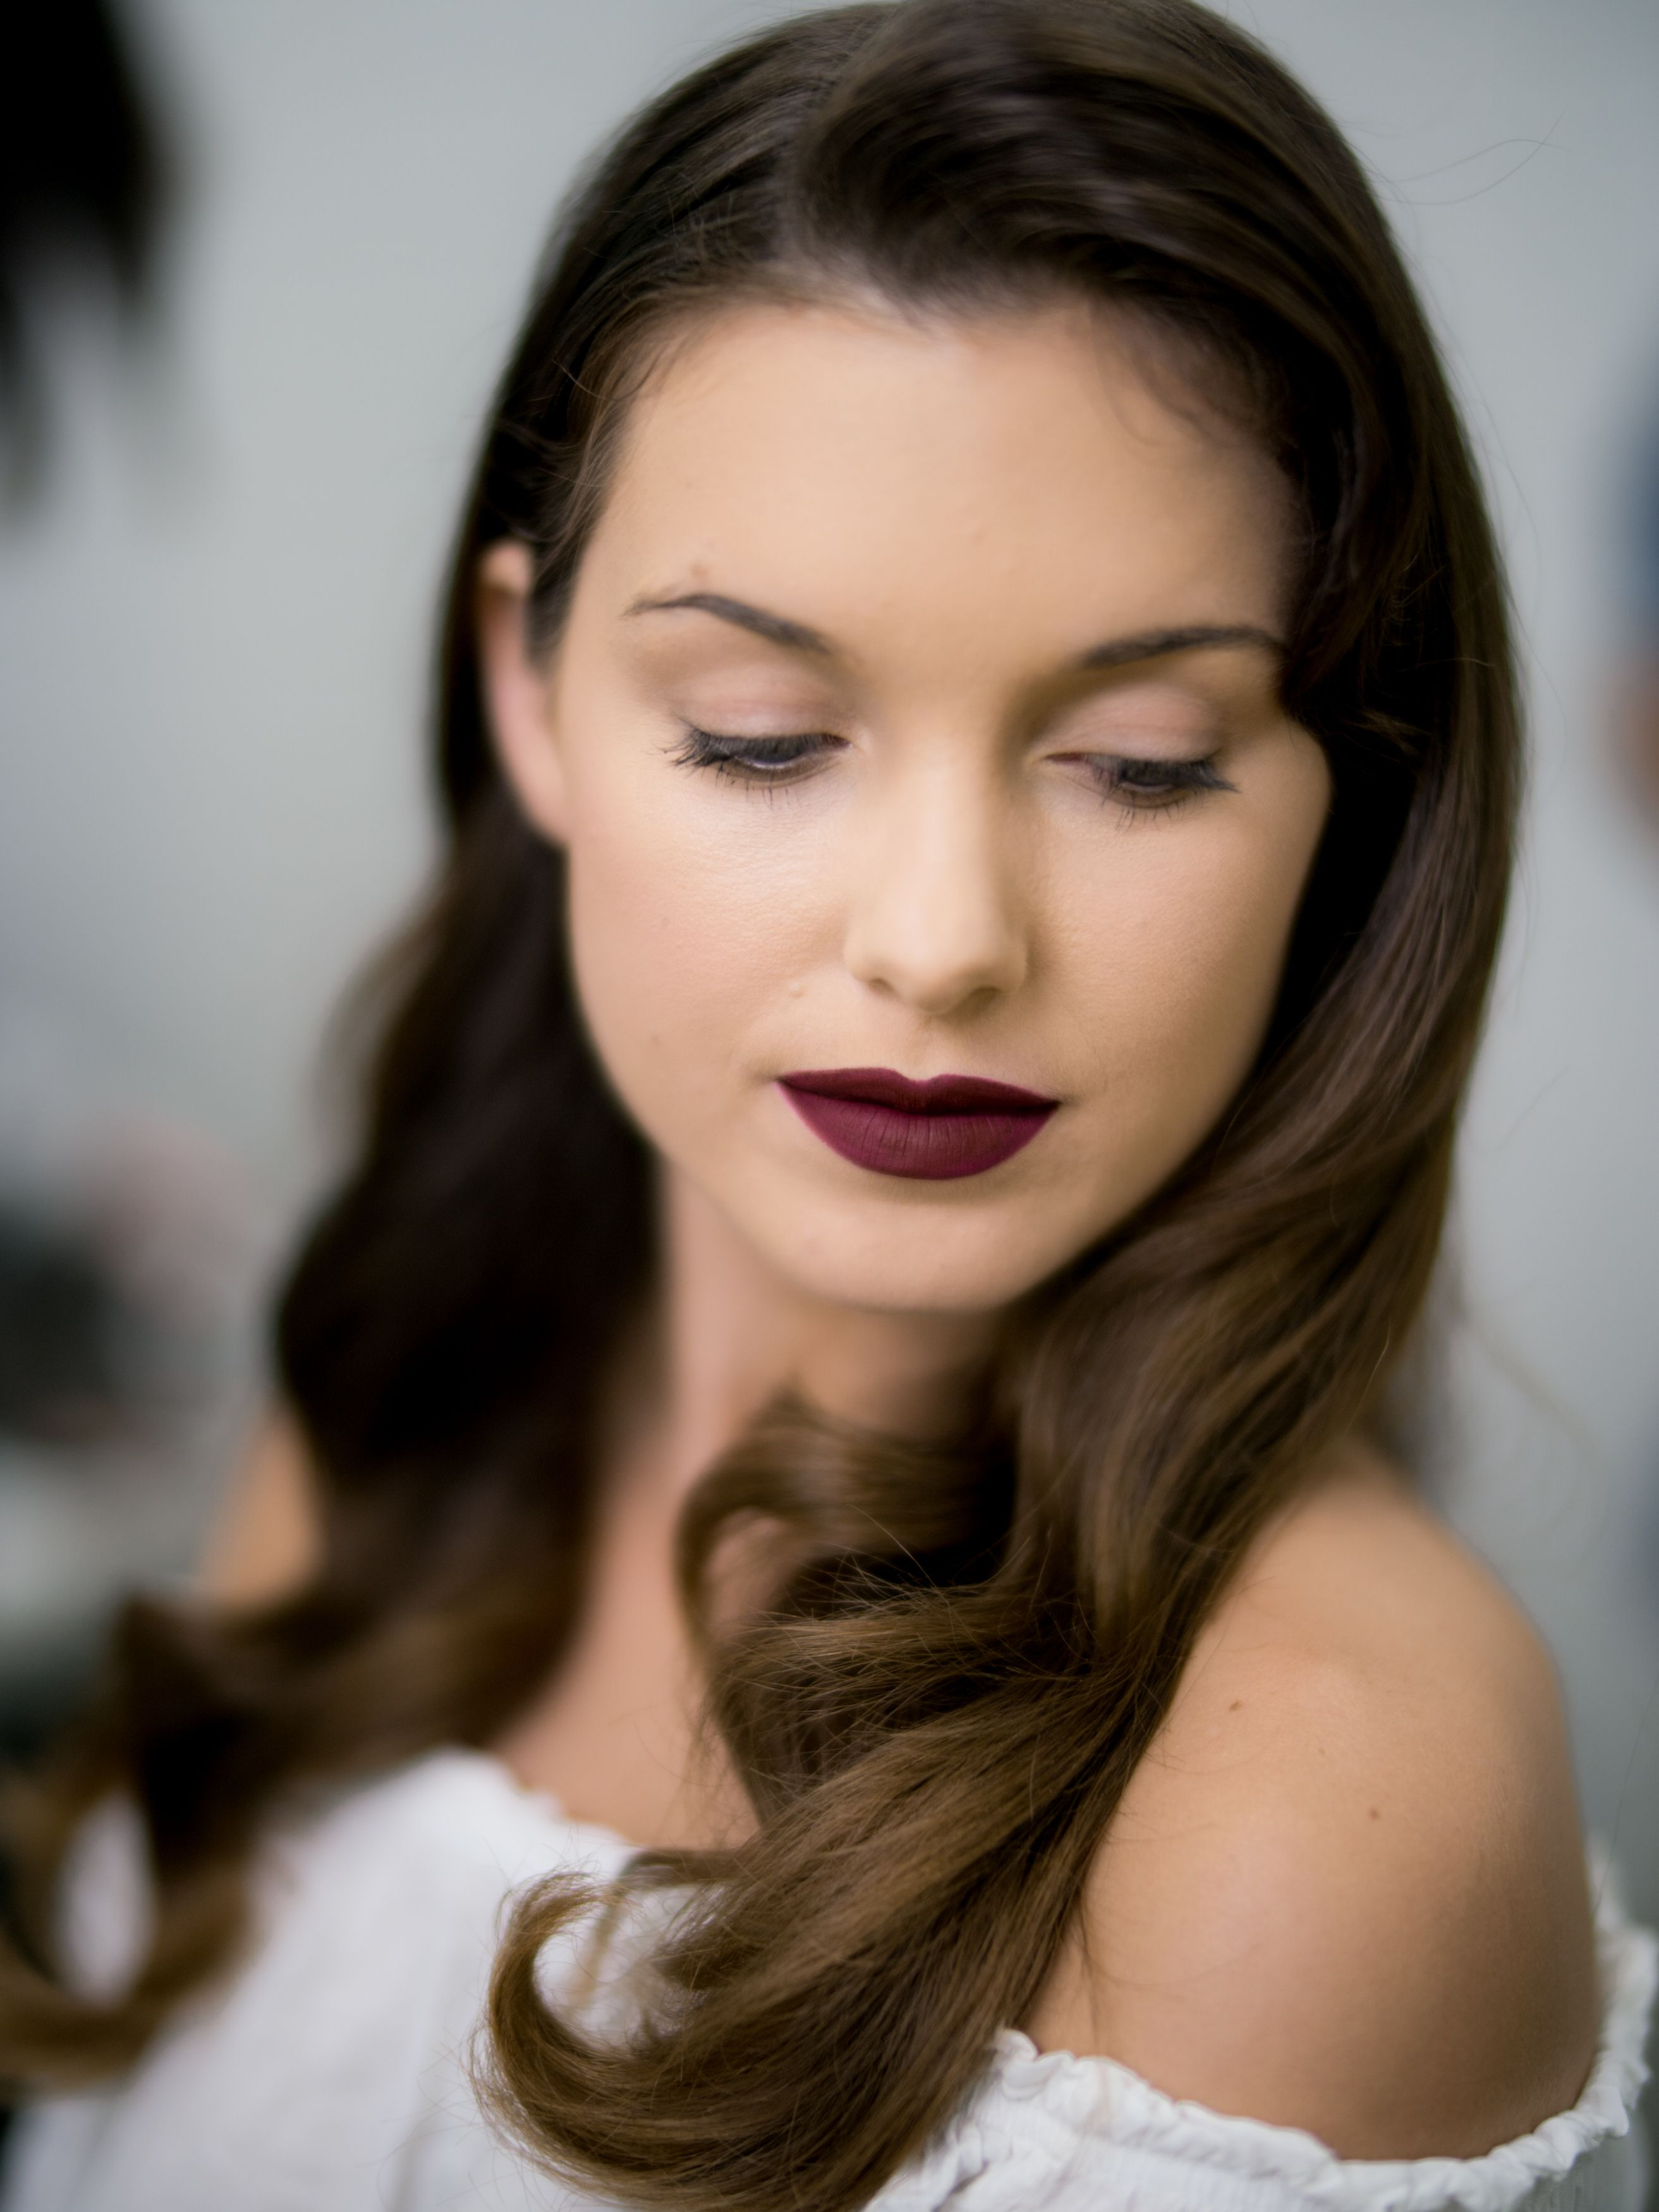 The Perfect Wedding Day Makeup Look for the Bold Type